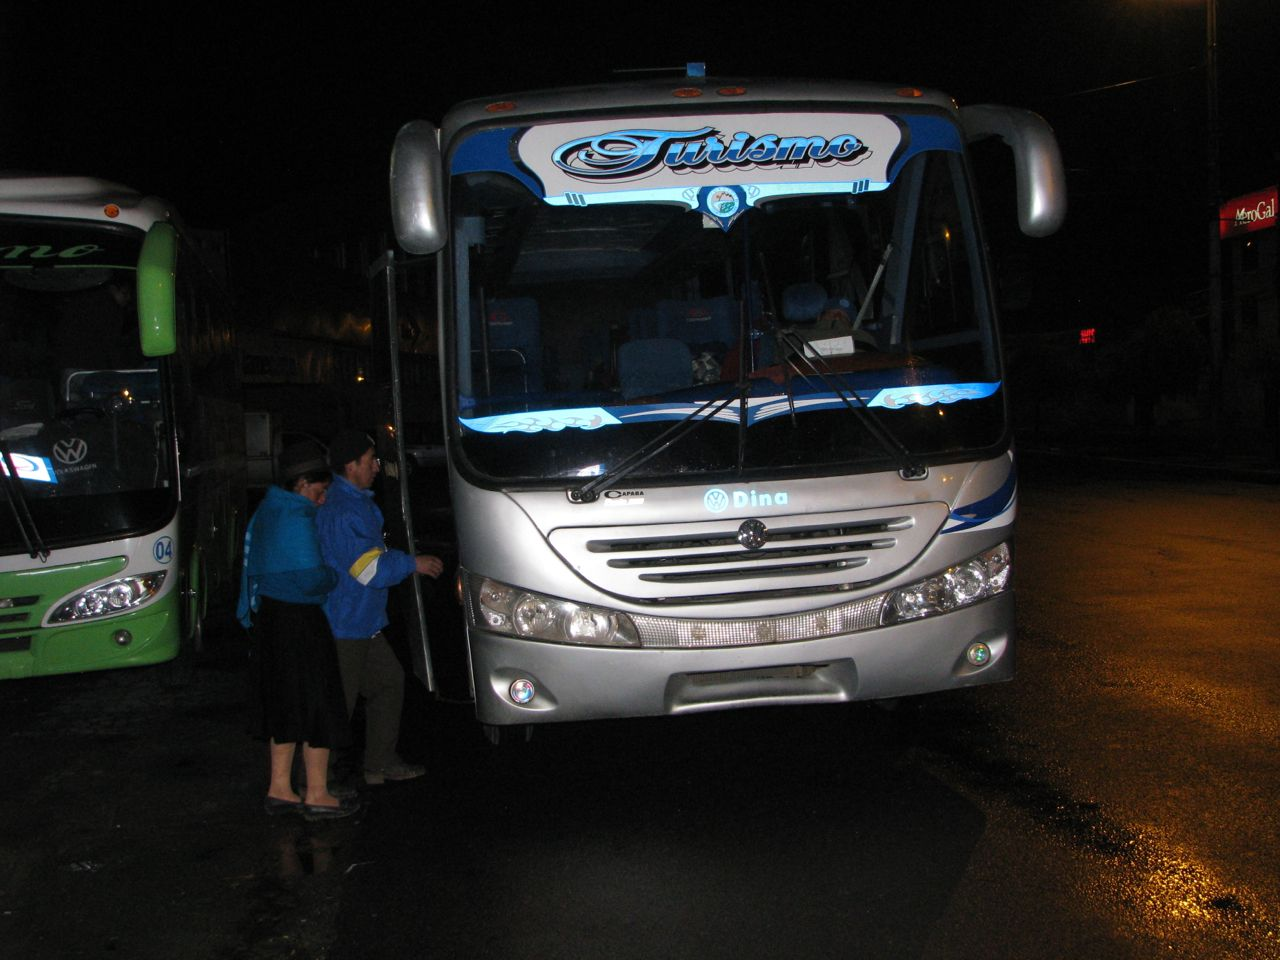 Baltazar and his family board a bus to the Quito airport